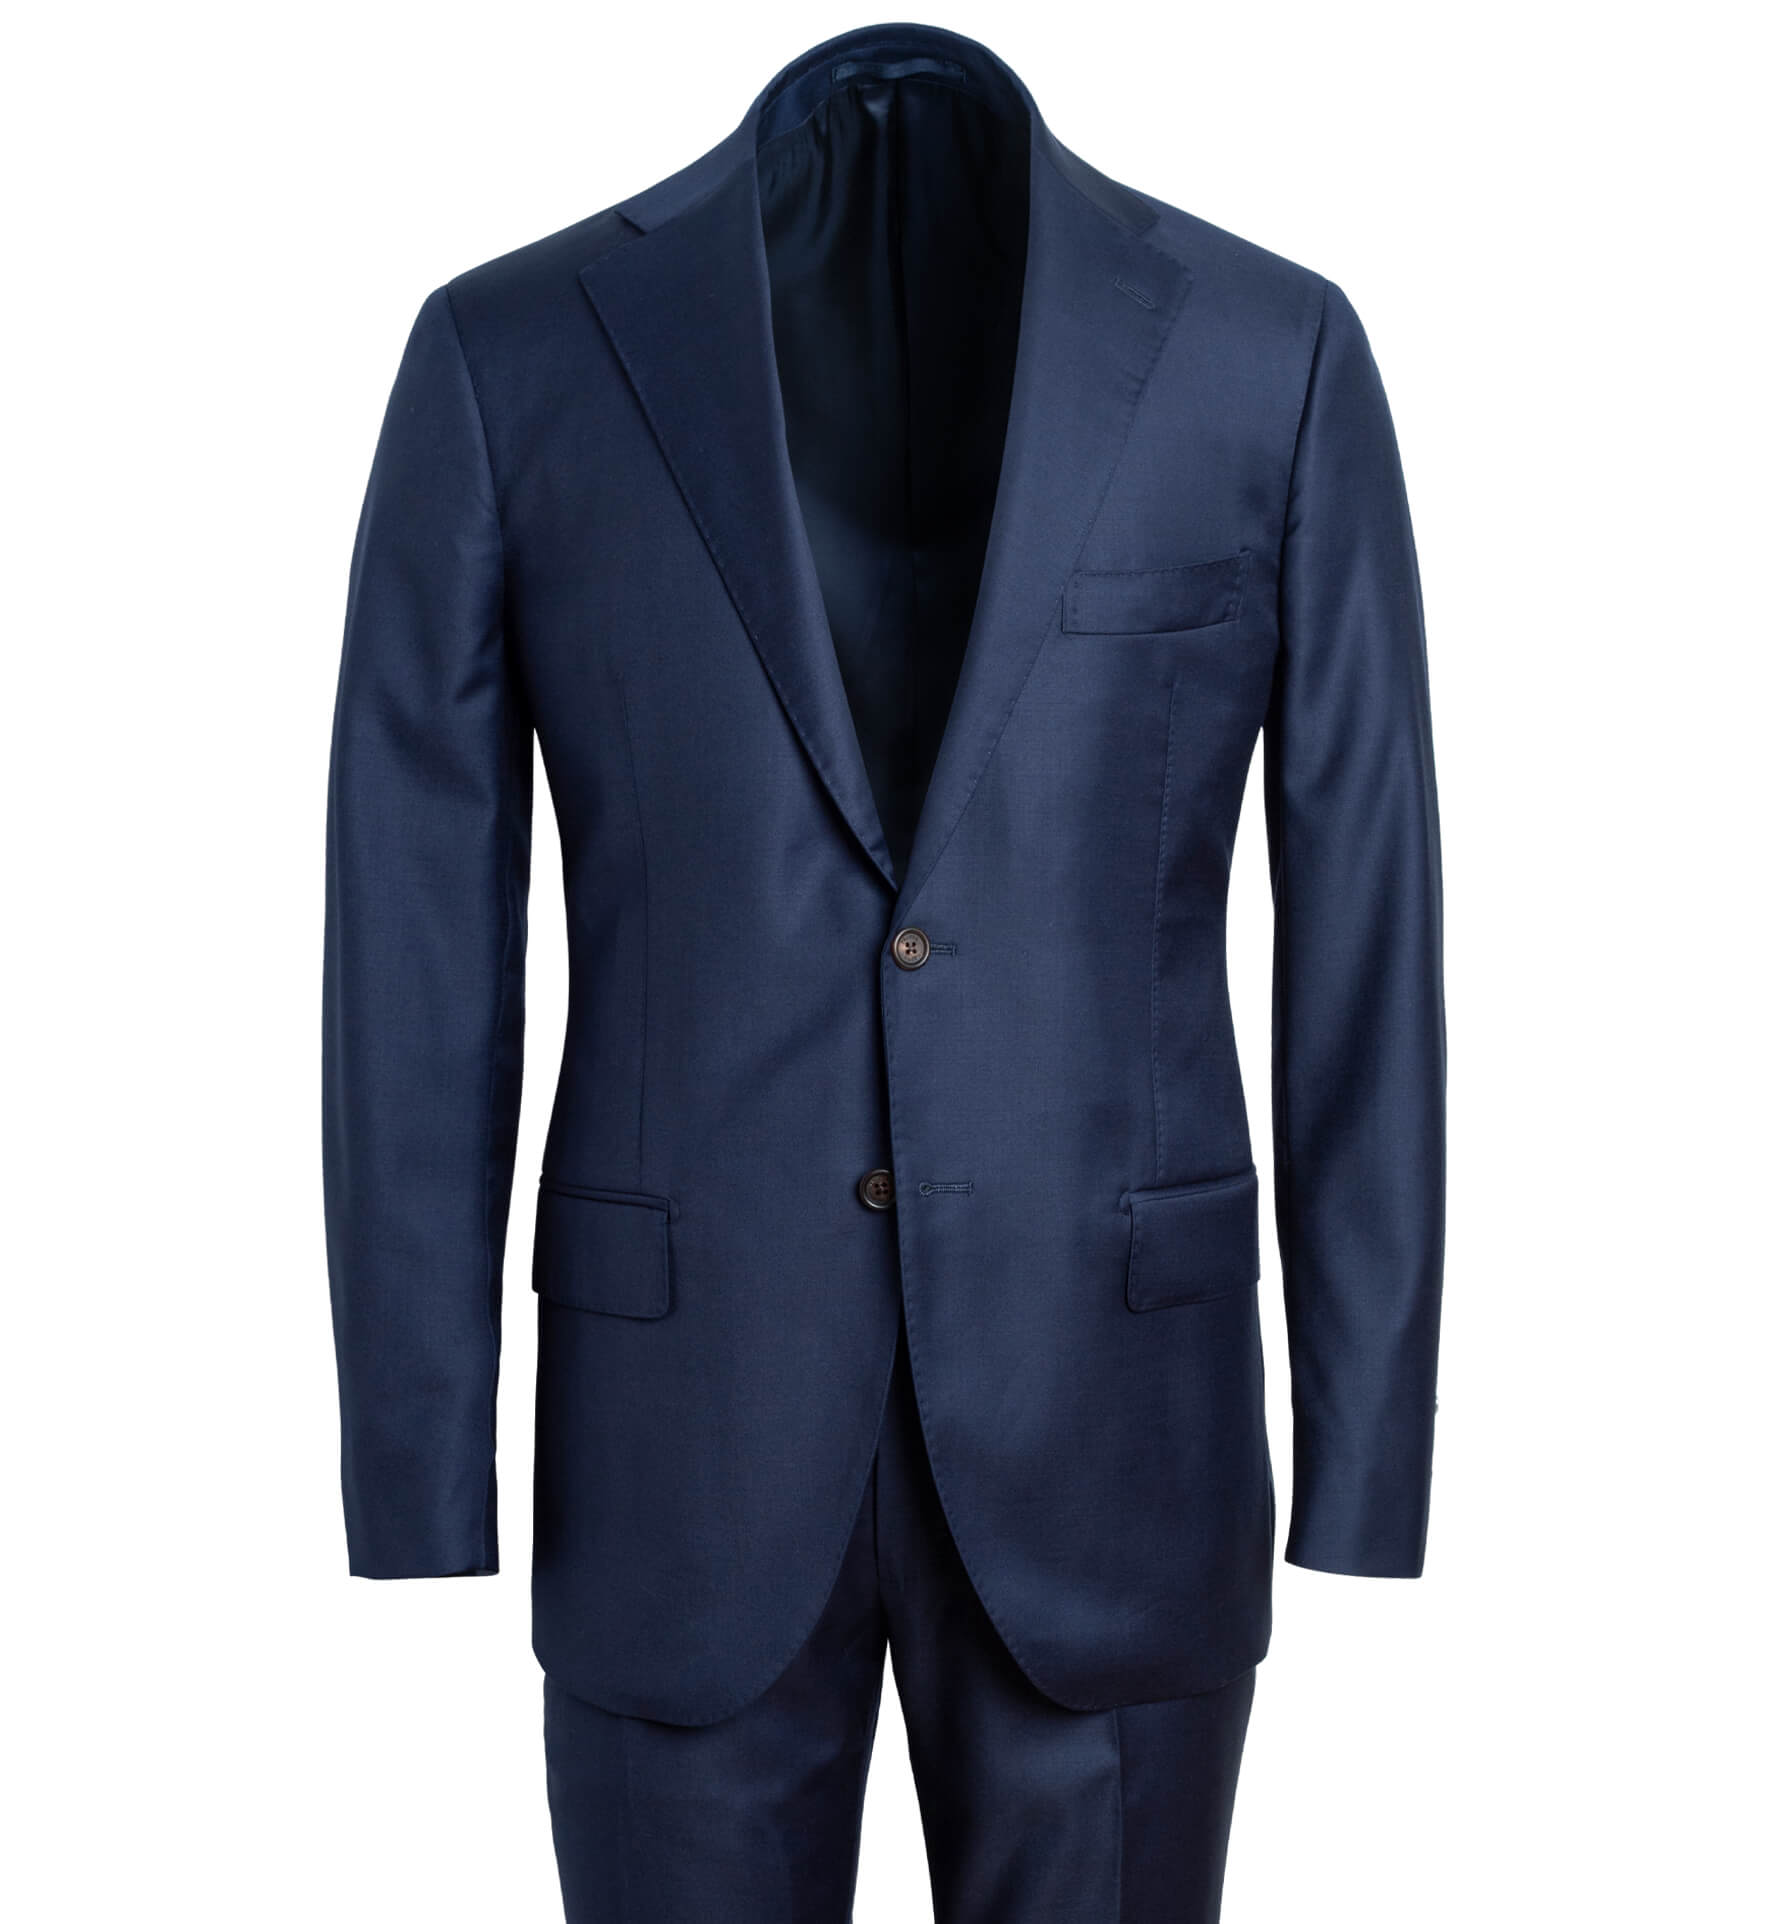 Zoom Image of Allen Navy Wool Suit